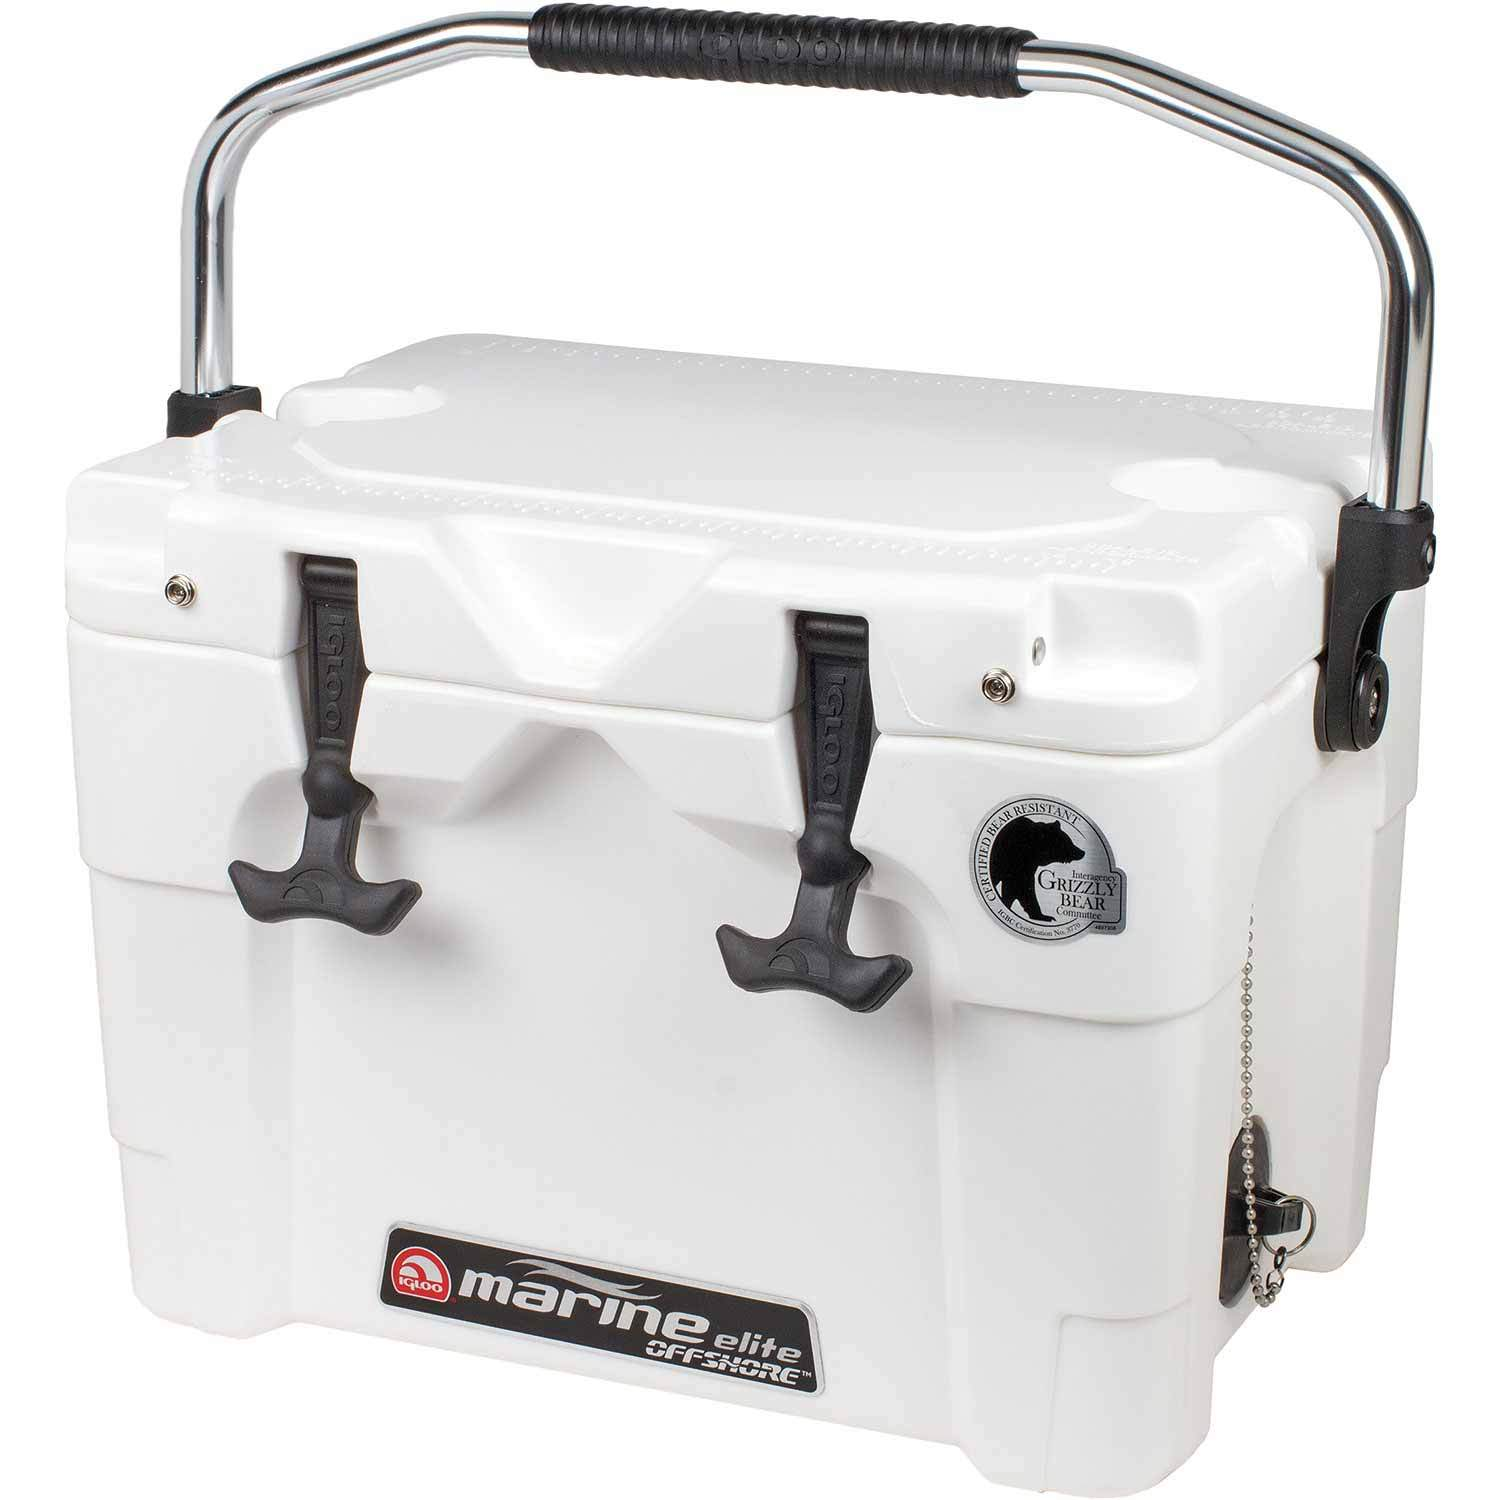 20 qt. Marine Elite Offshore Cooler